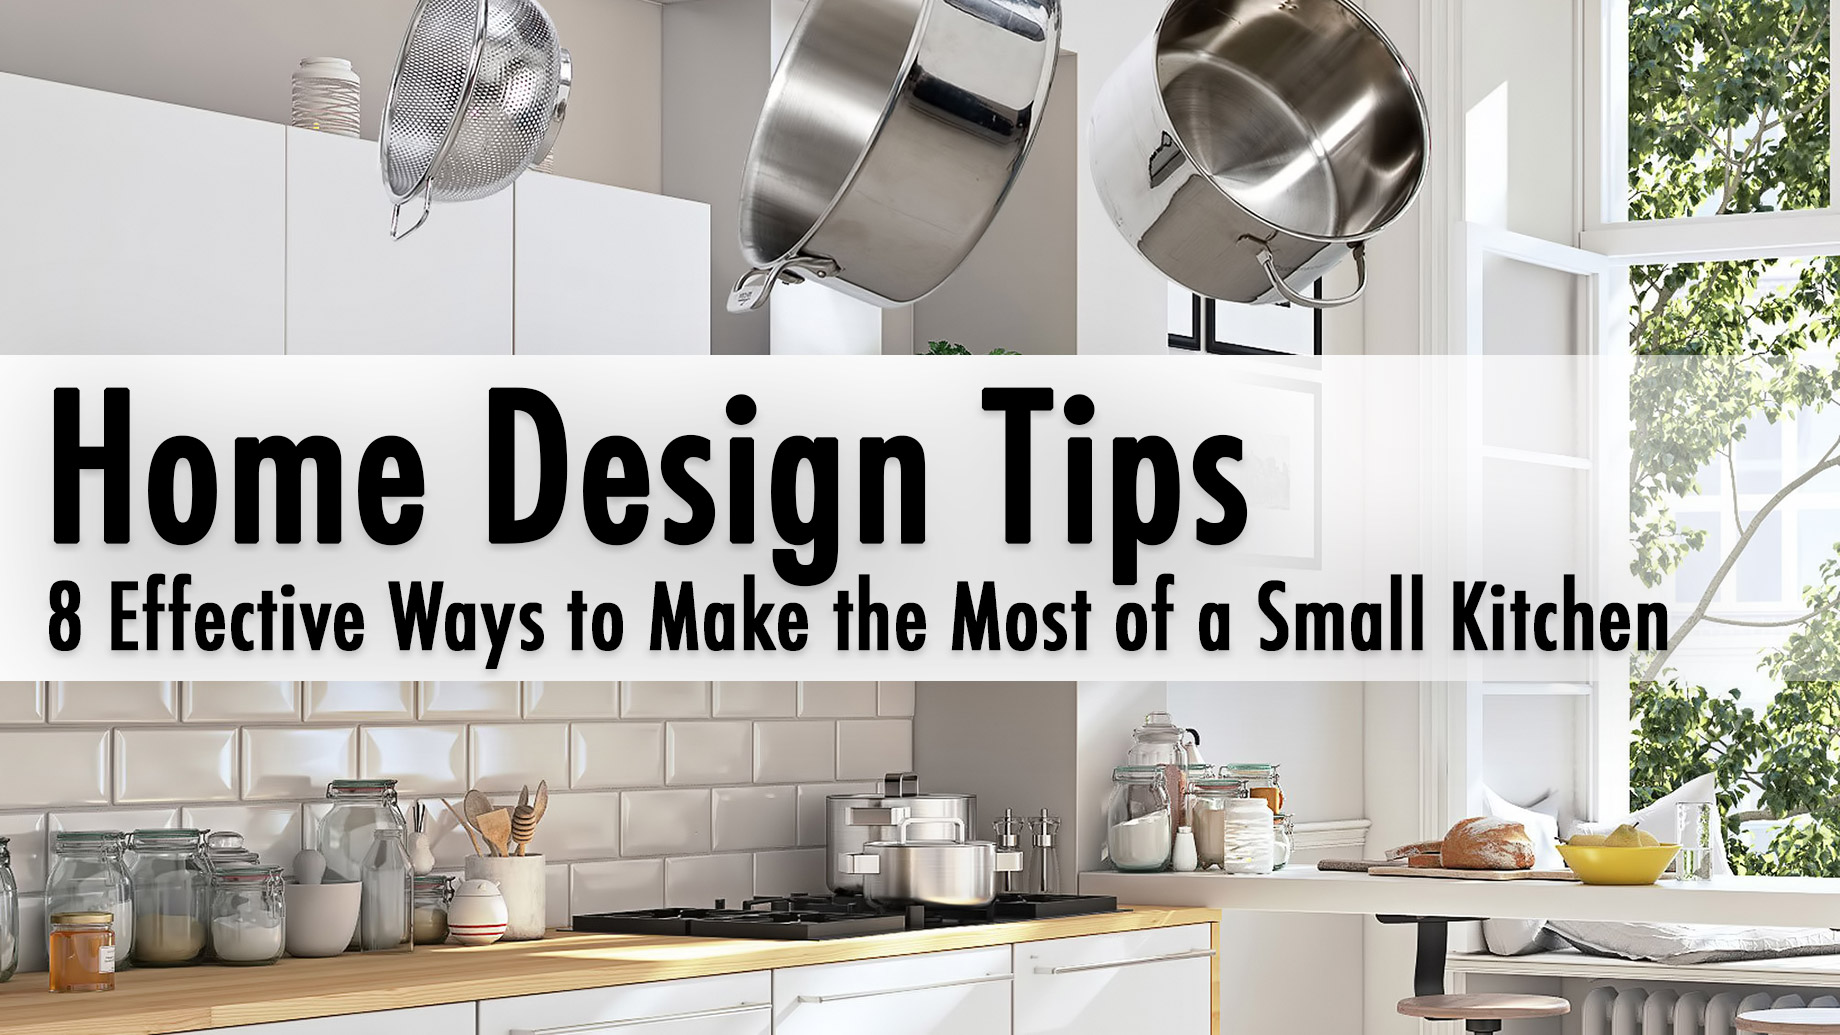 Home Design Tips - 8 Effective Ways to Make the Most of a Small Kitchen